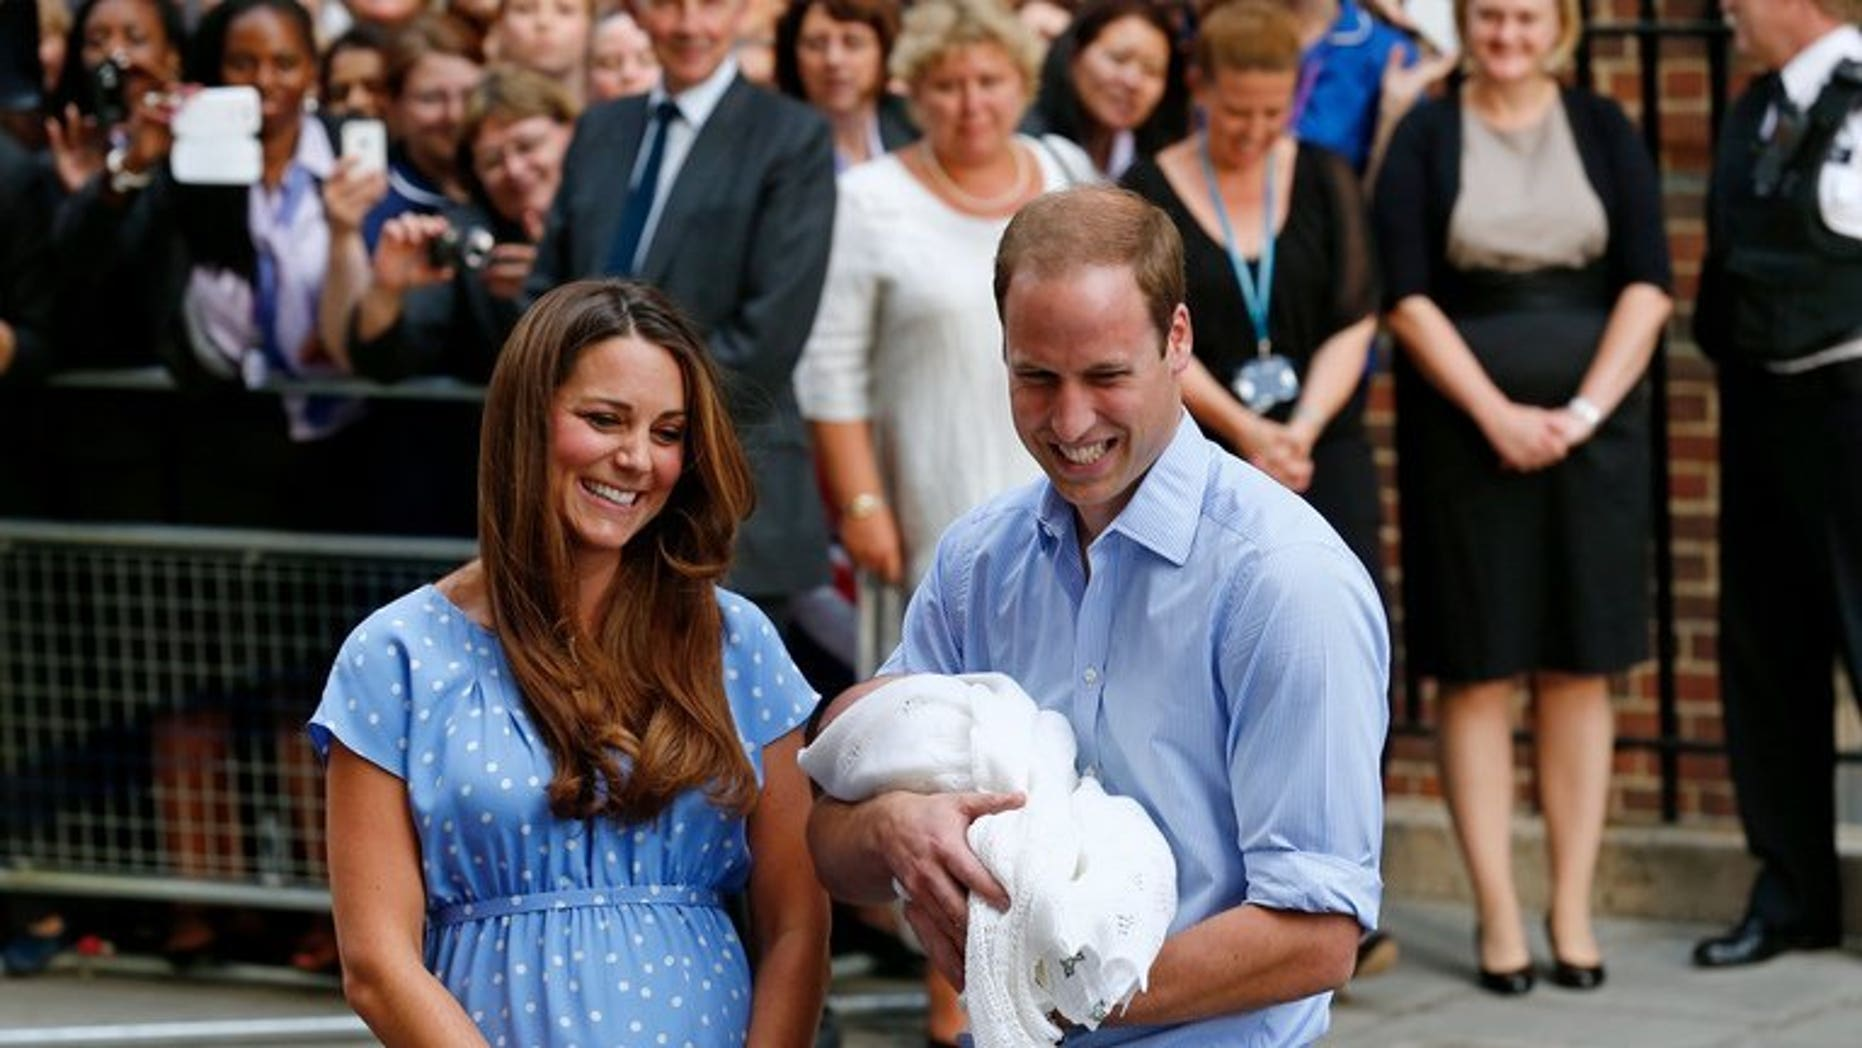 Prince William and Catherine with Prince George outside St Mary's Hospital in London on July 23. Kate will next month attend her first public engagement since giving birth, when she takes part in a charity event with her husband, the palace said on Thursday.